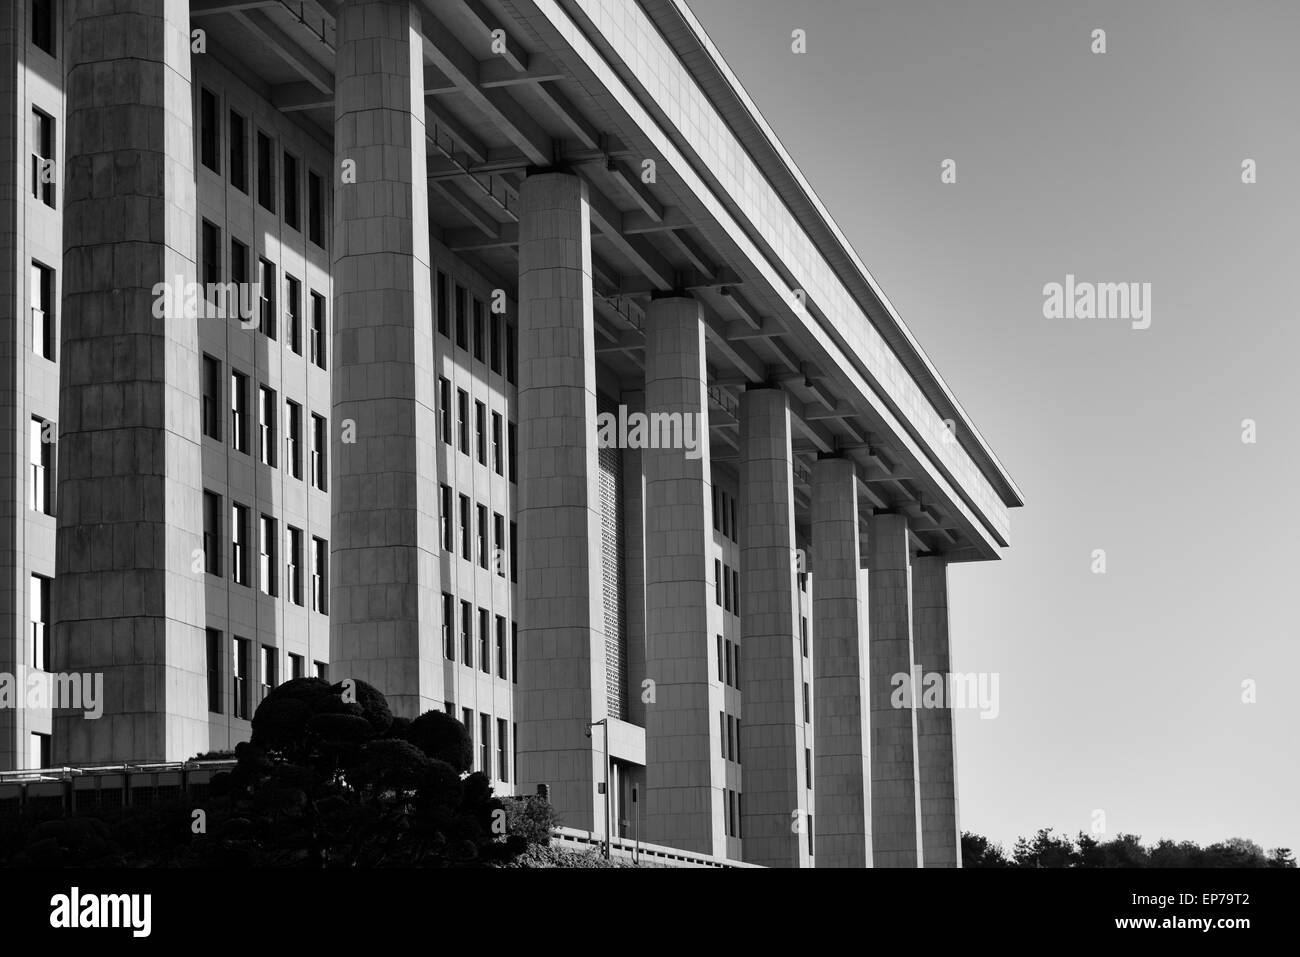 Black and white of the imposing facade of the National Assembly of South Korea in Seoul. - Stock Image